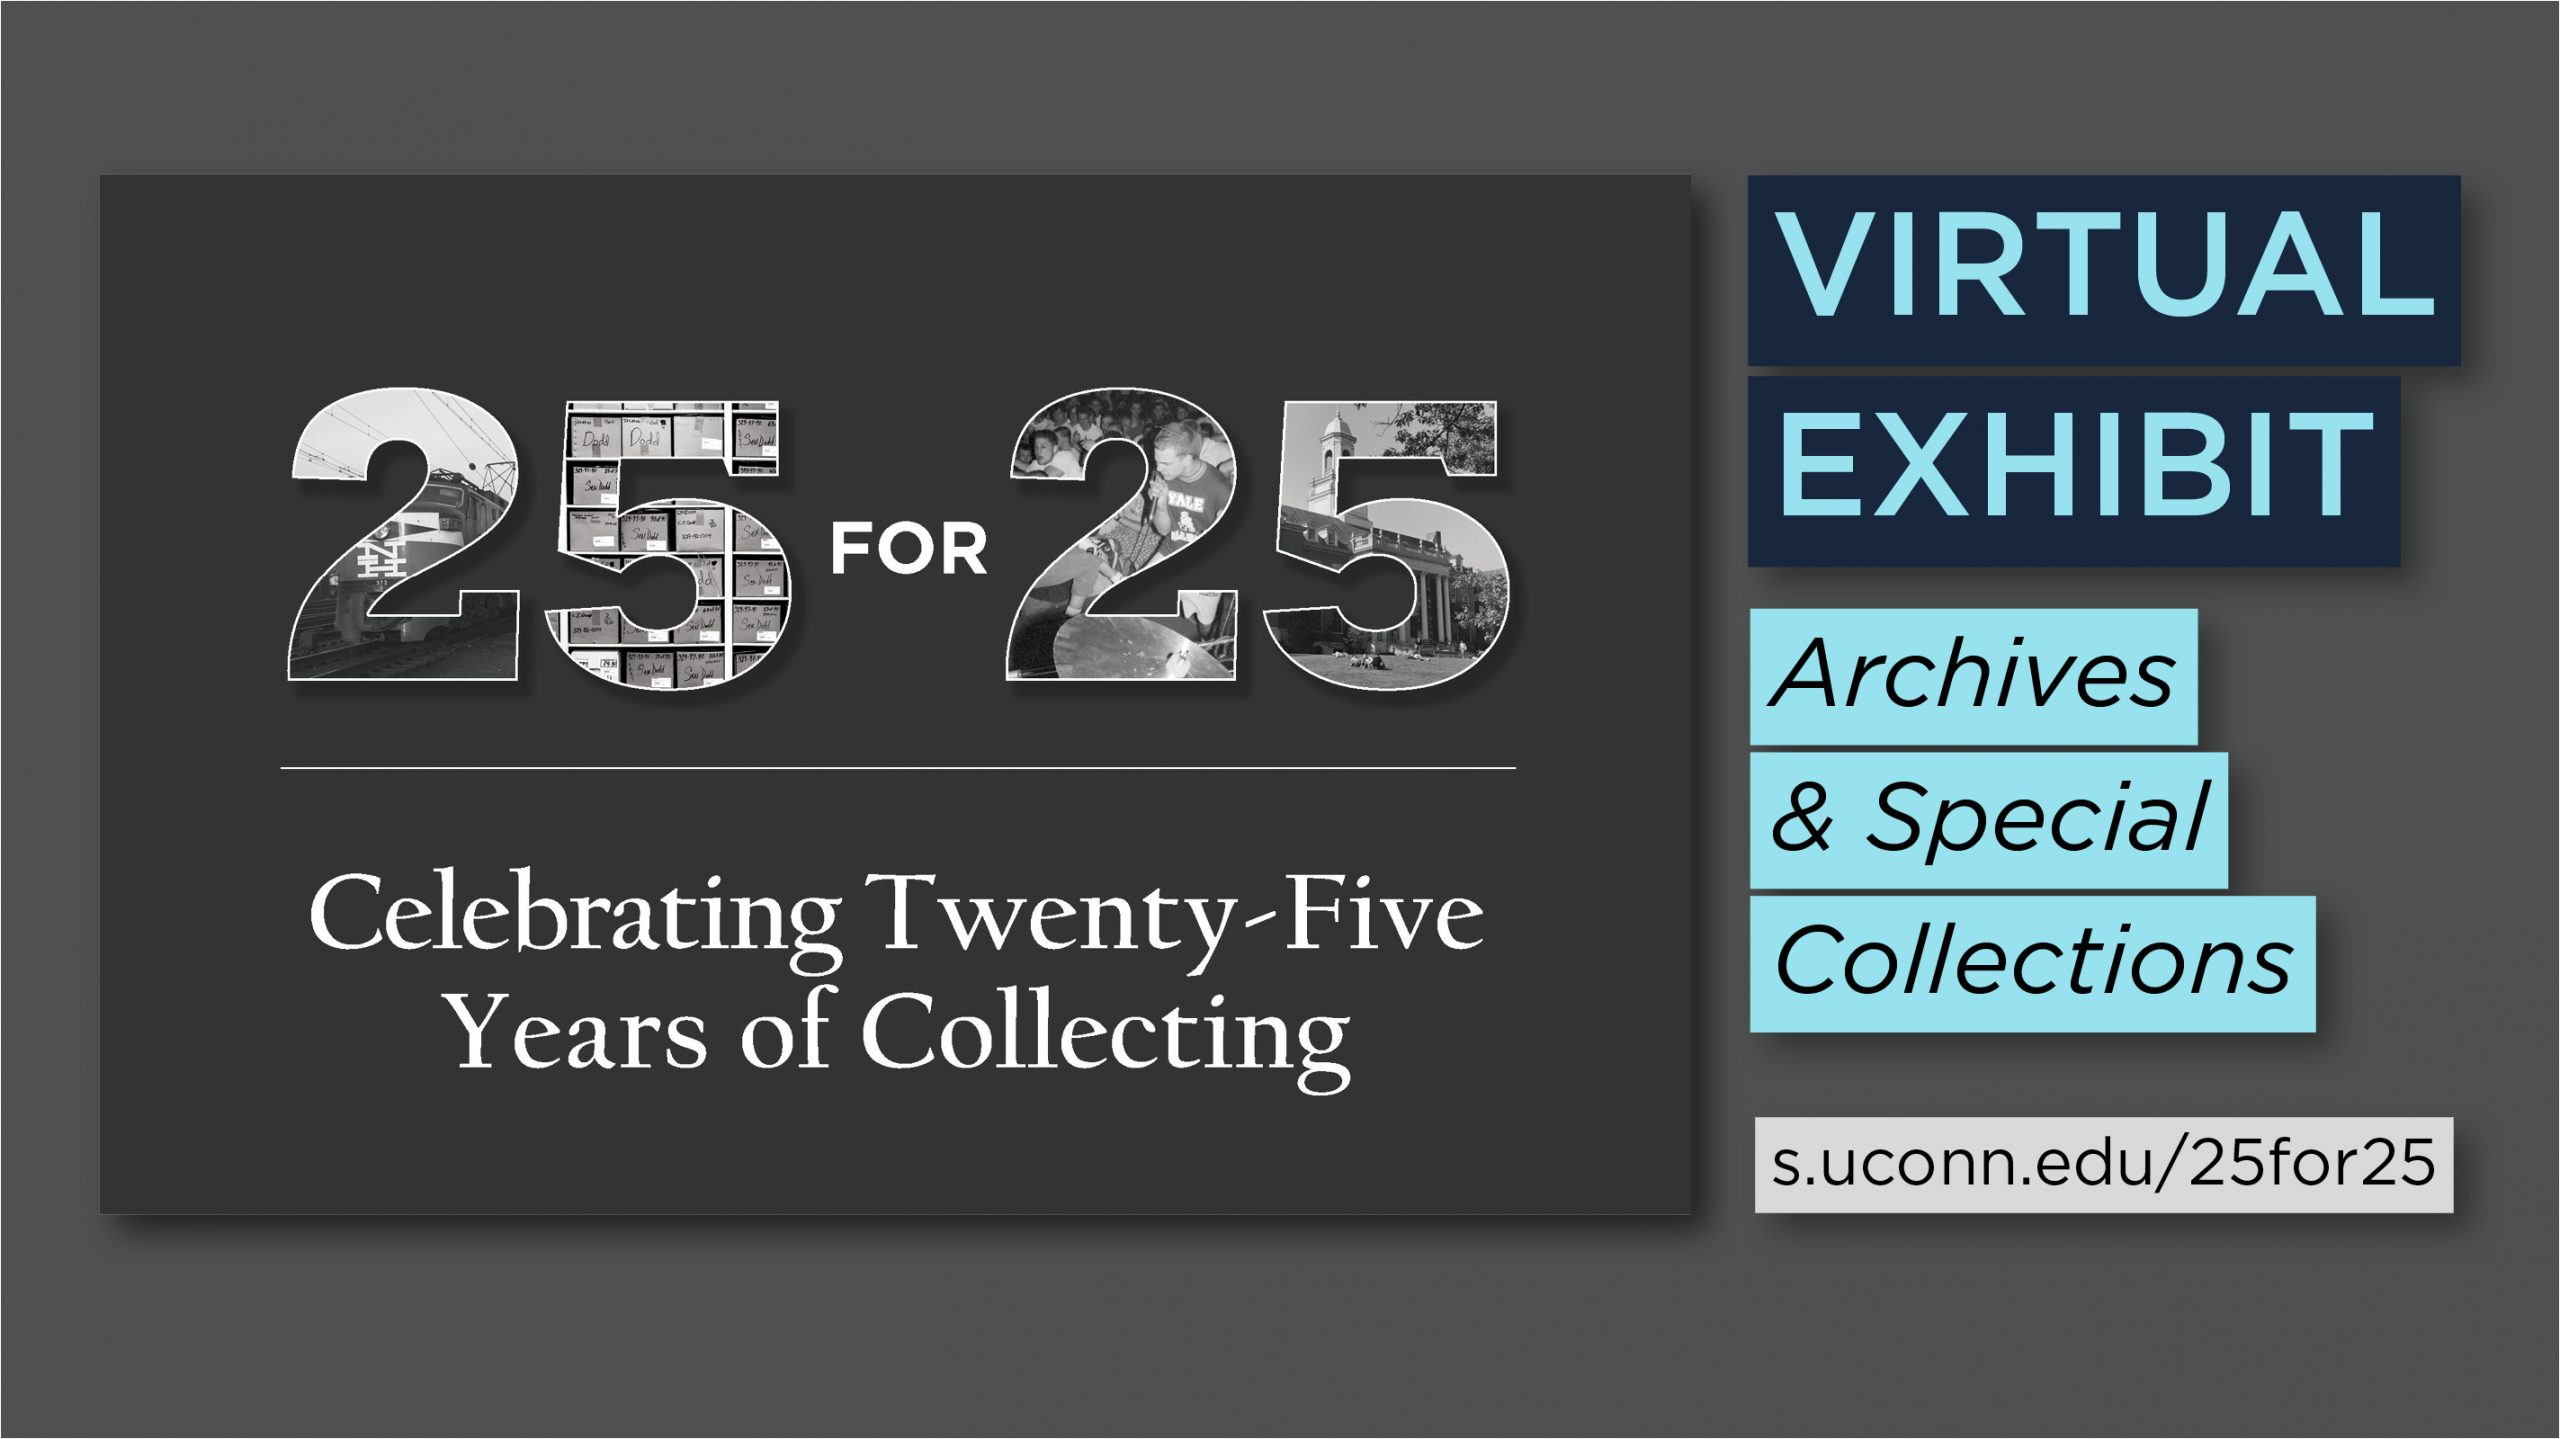 25 for 25 Celebrating Twenty-Five Years of Collecting. Virtual Exhibit. Archives & Special Collections. s.uconn.edu/25for25